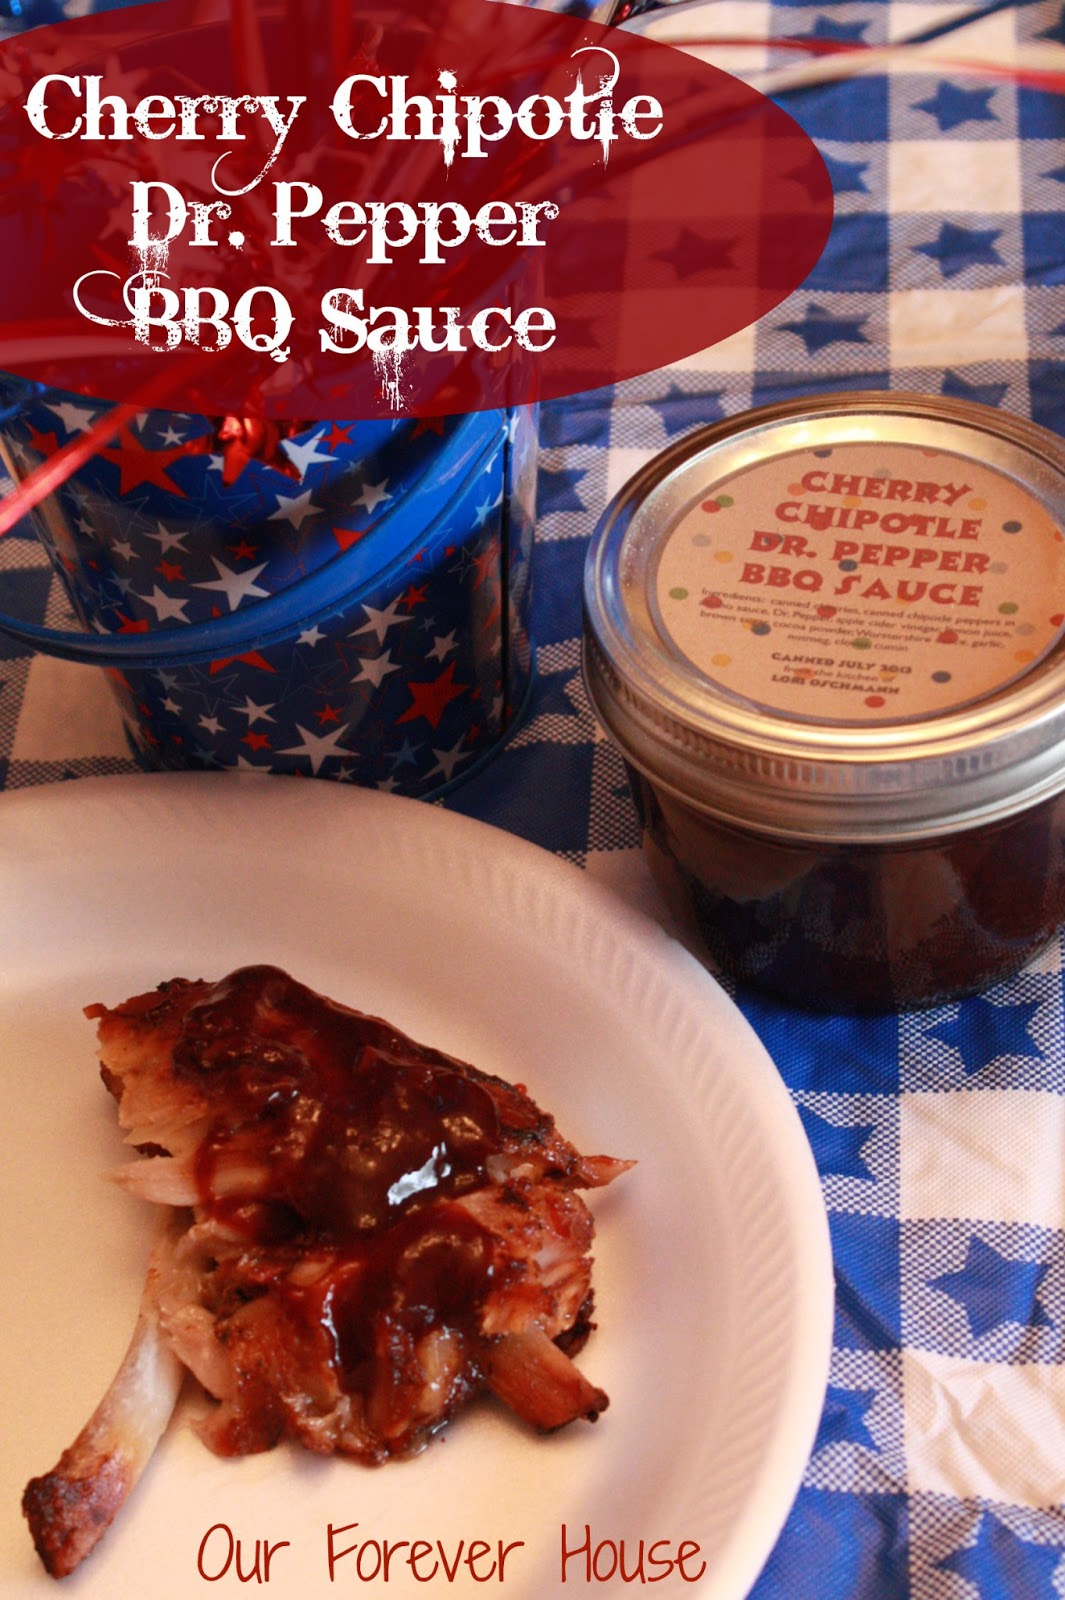 Our Forever House: Cherry Chipotle Dr. Pepper BBQ Sauce